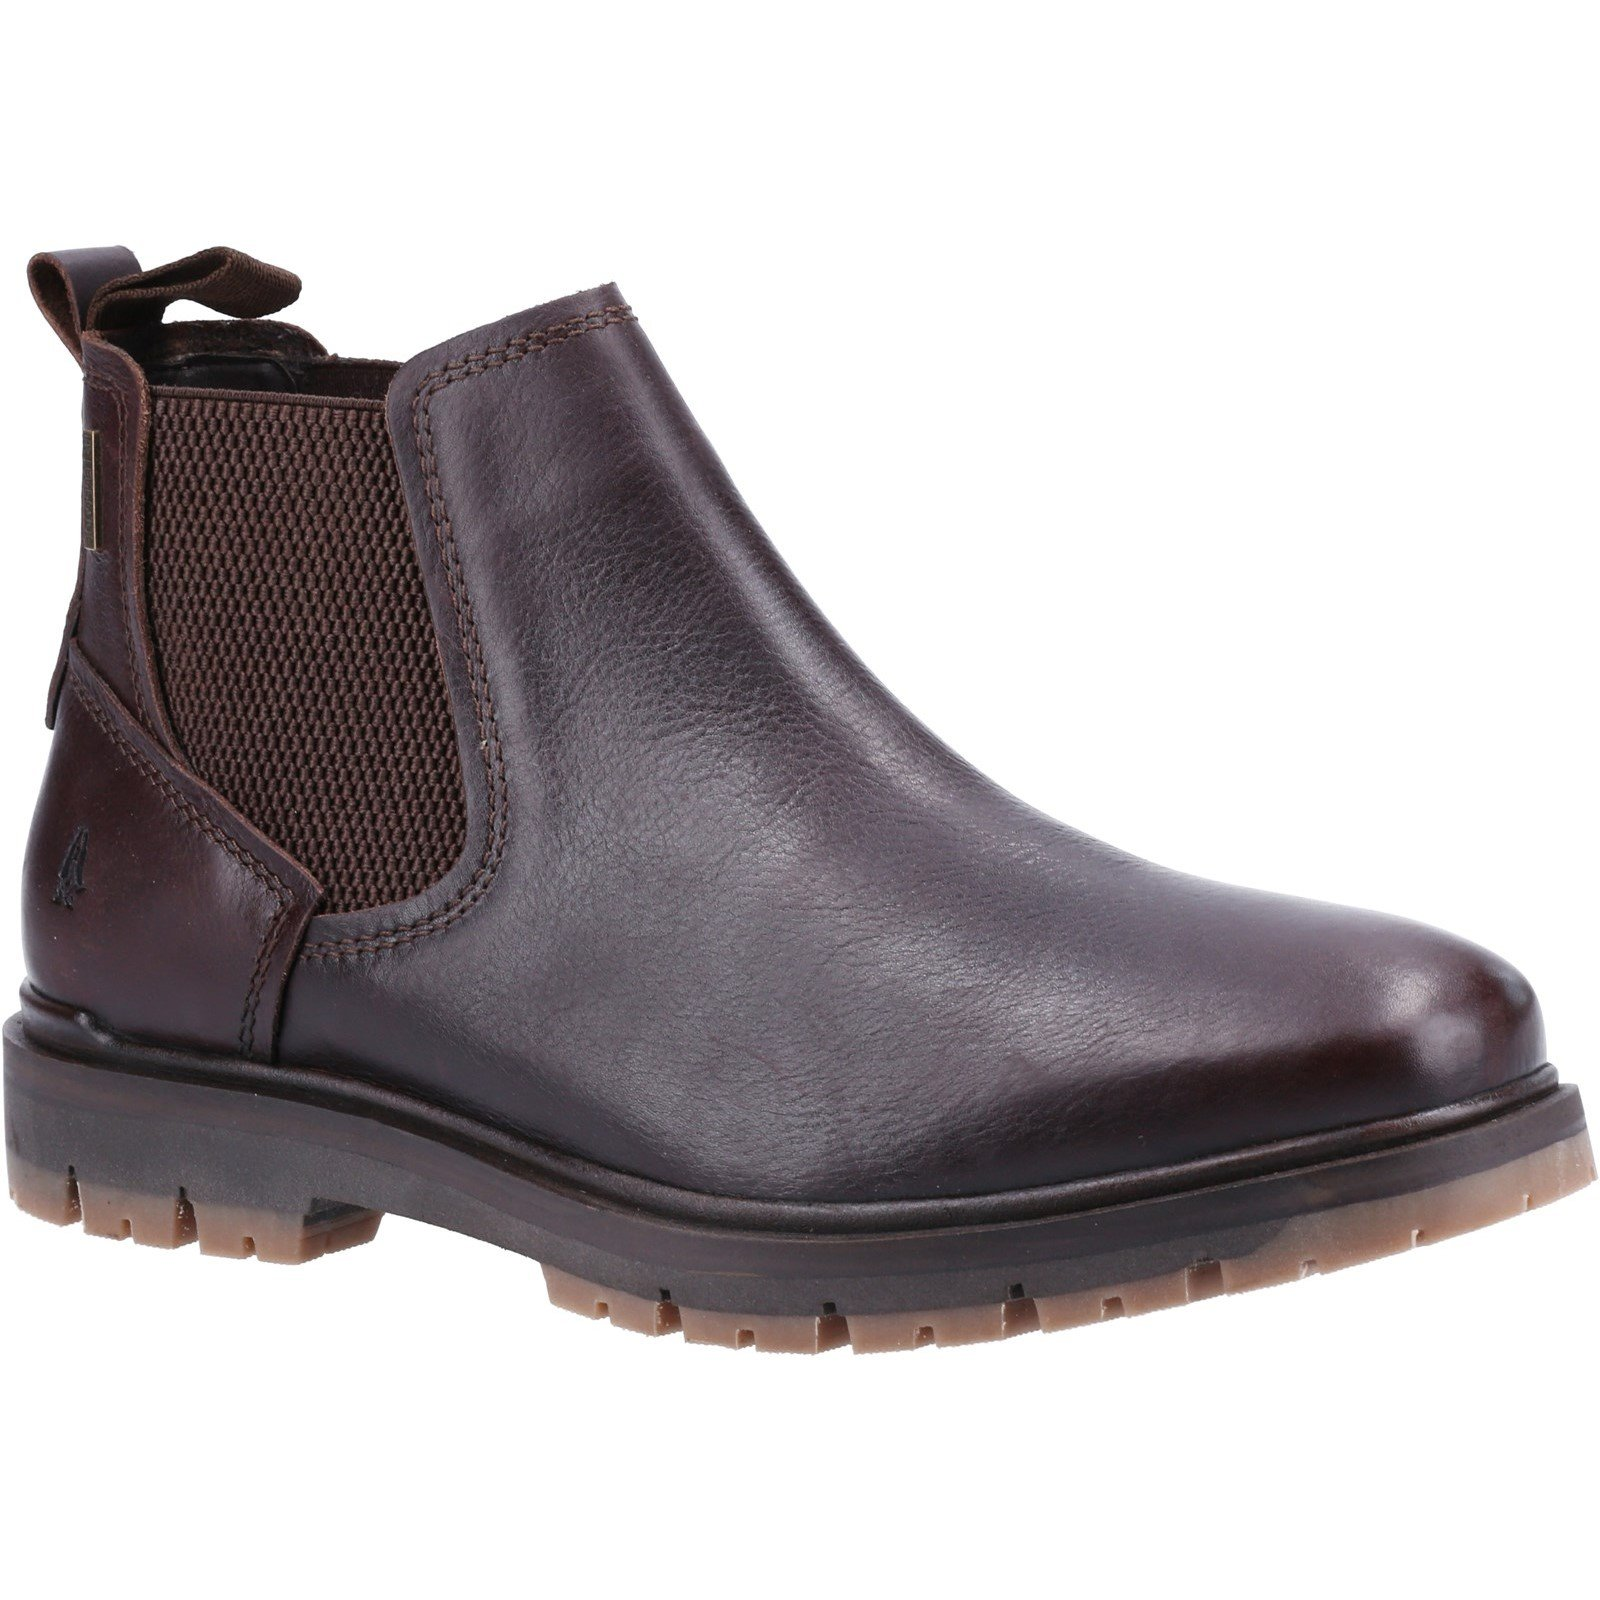 Hush Puppies Men's Paxton Chelsea Boot Various Colours 32882 - Brown 10